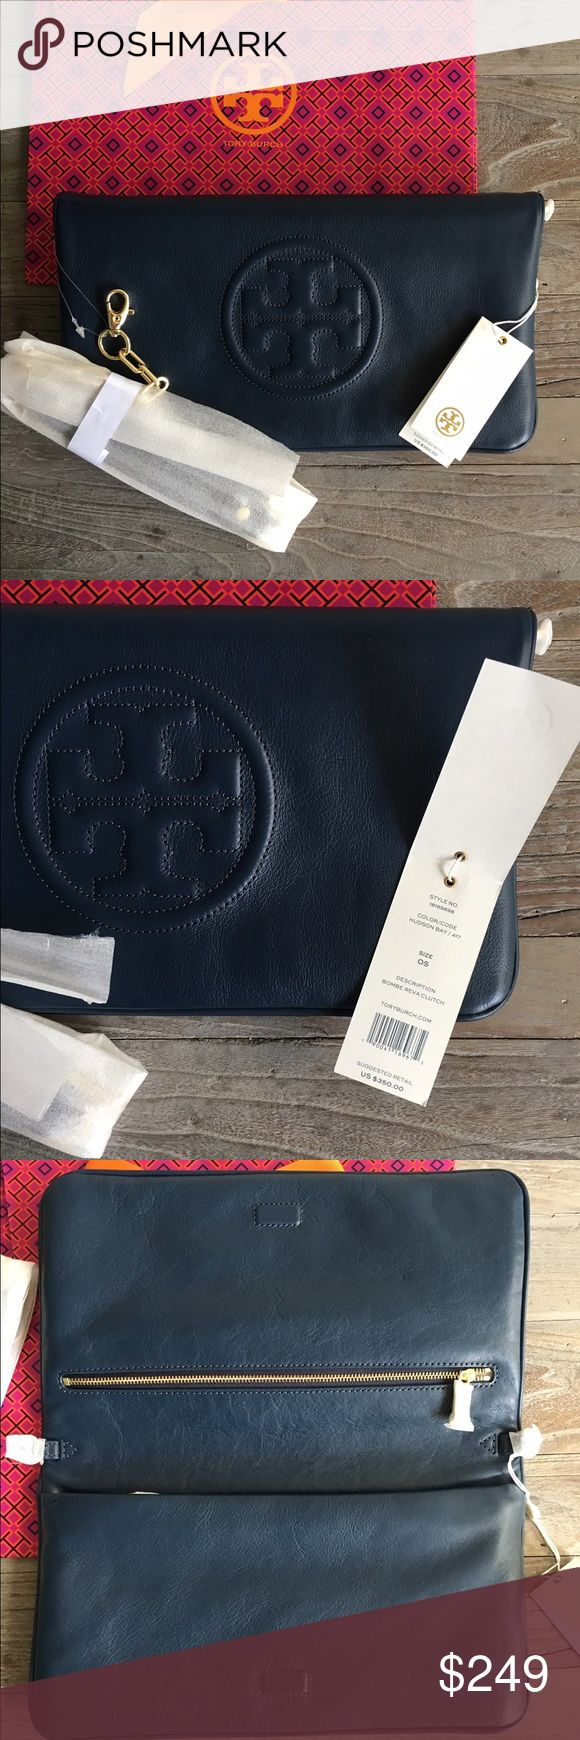 NWT Tory Burch Reva Bombe Clutch Brand new with tag and gift bag Tory Burch Reva Bombe Clutch in Hudson (Navy) Blue with gold hardware. I do have proof of purchase and a gift receipt so yes this is authentic. NO TRADES. FIRM PRICE. No dust bag, sorry! All items in my closet are Authentic guaranteed. Also available in black! Tory Burch Bags Clutches & Wristlets